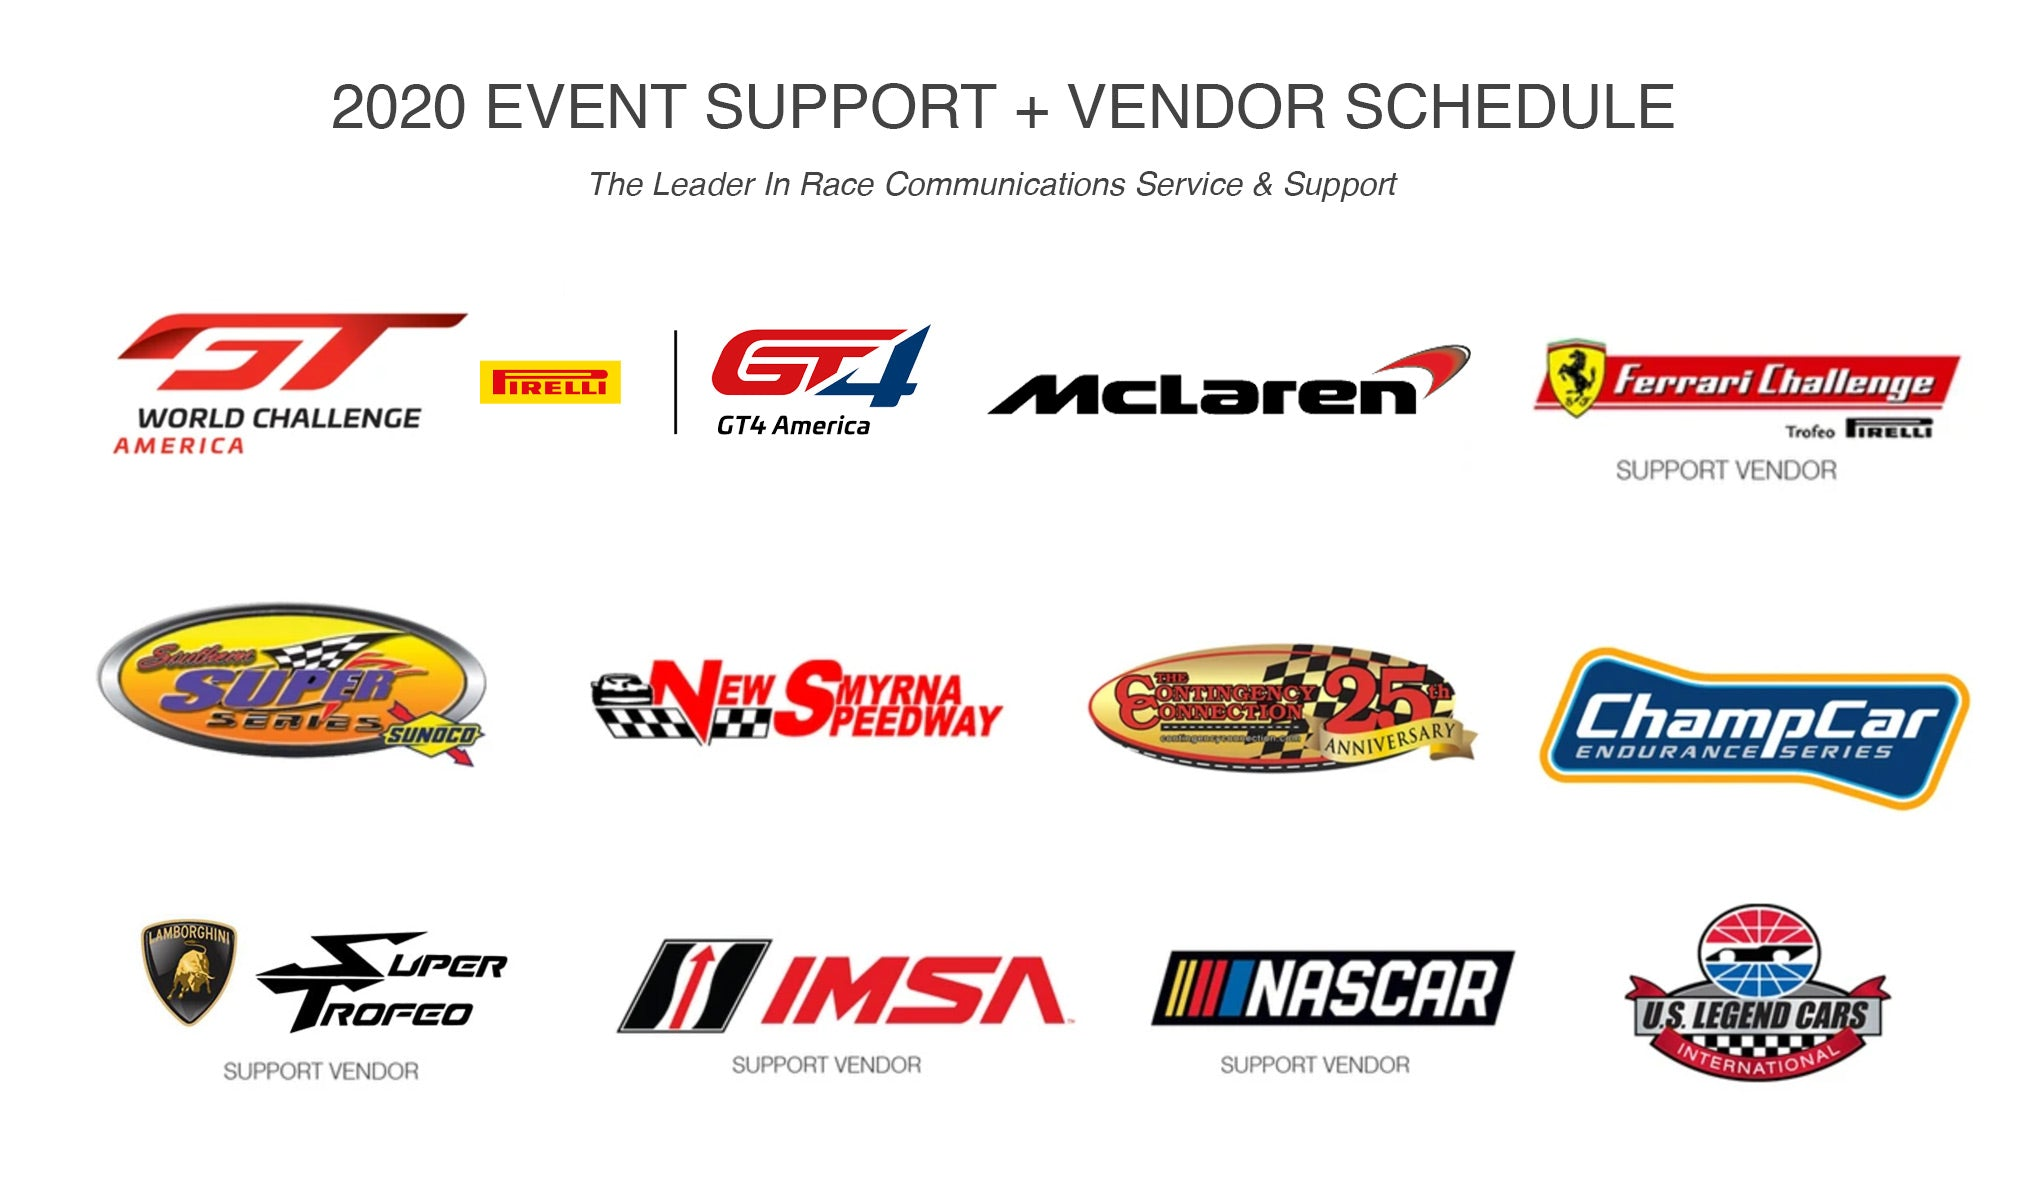 2020 Racing Radios Support Events | The Leader In Race Team Support